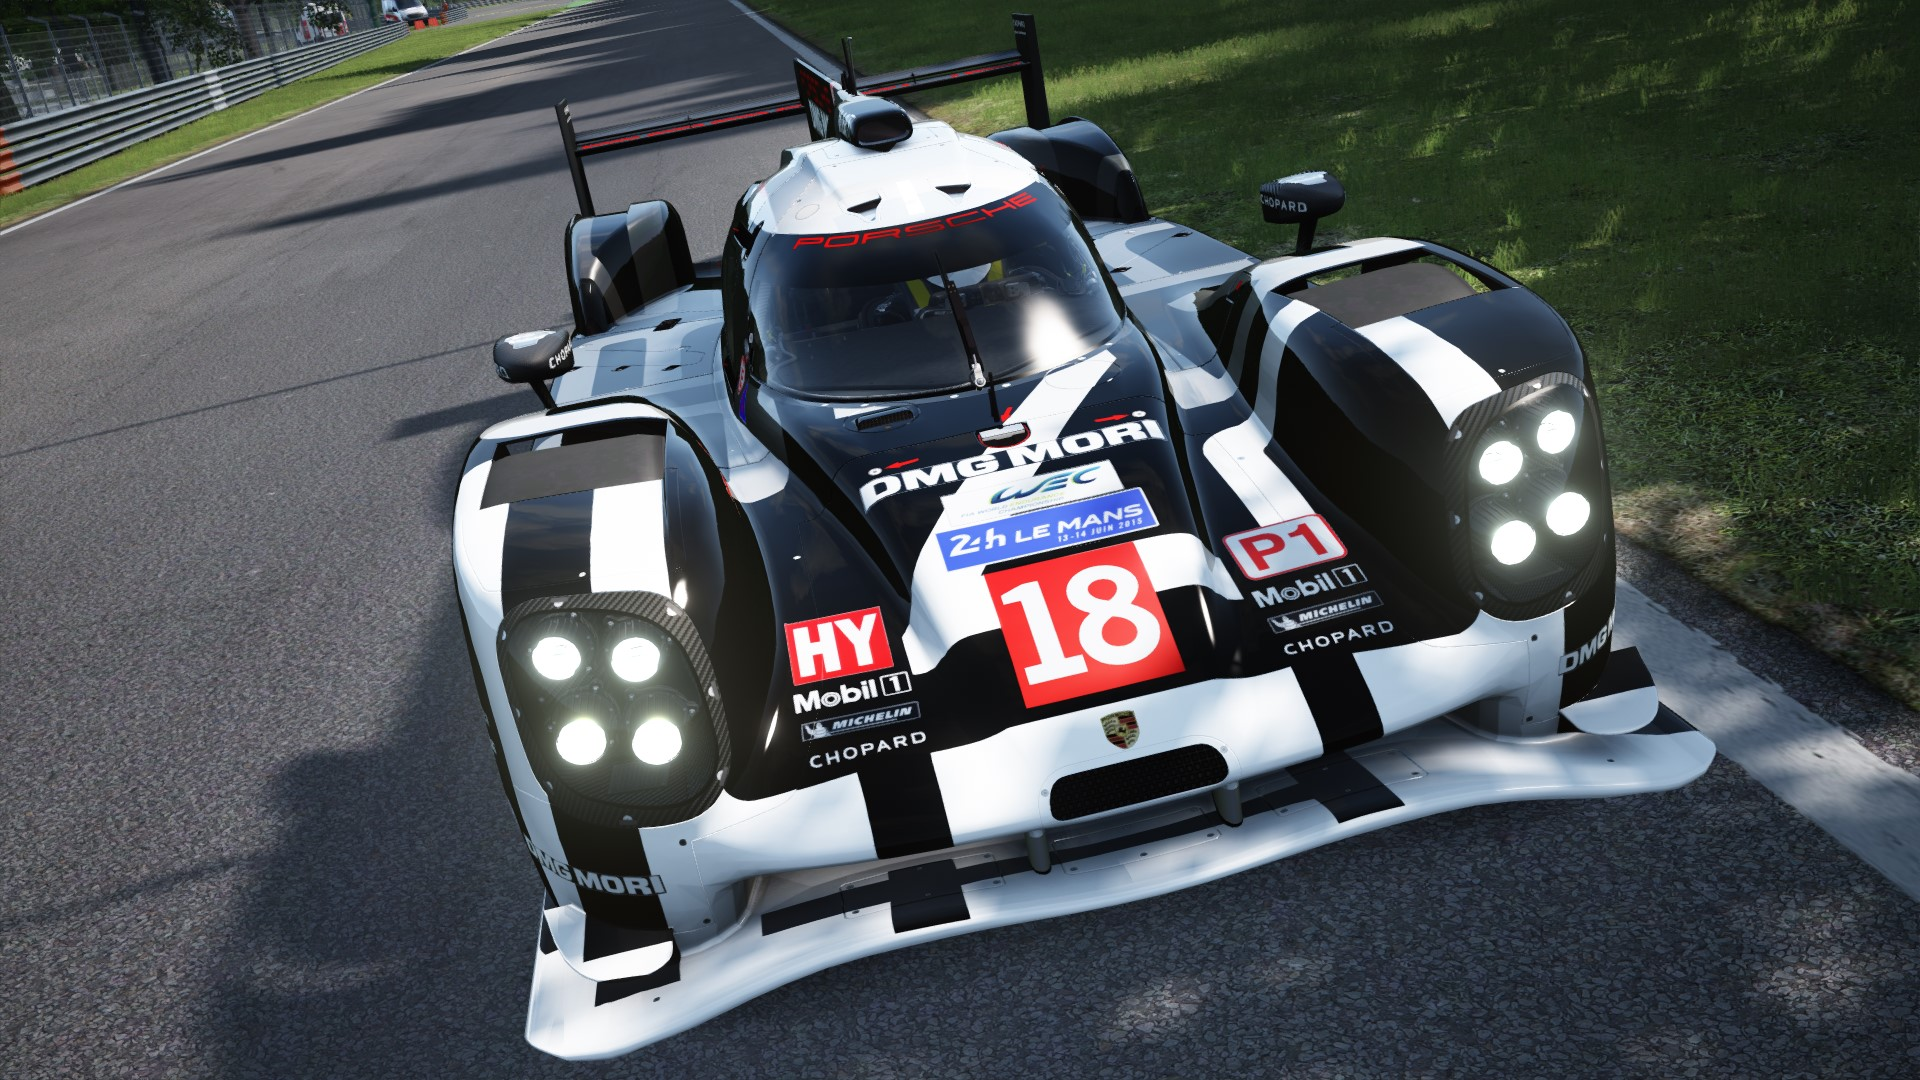 Screenshot_ks_porsche_919_hybrid_2015_monza_4-12-116-1-41-25.jpg